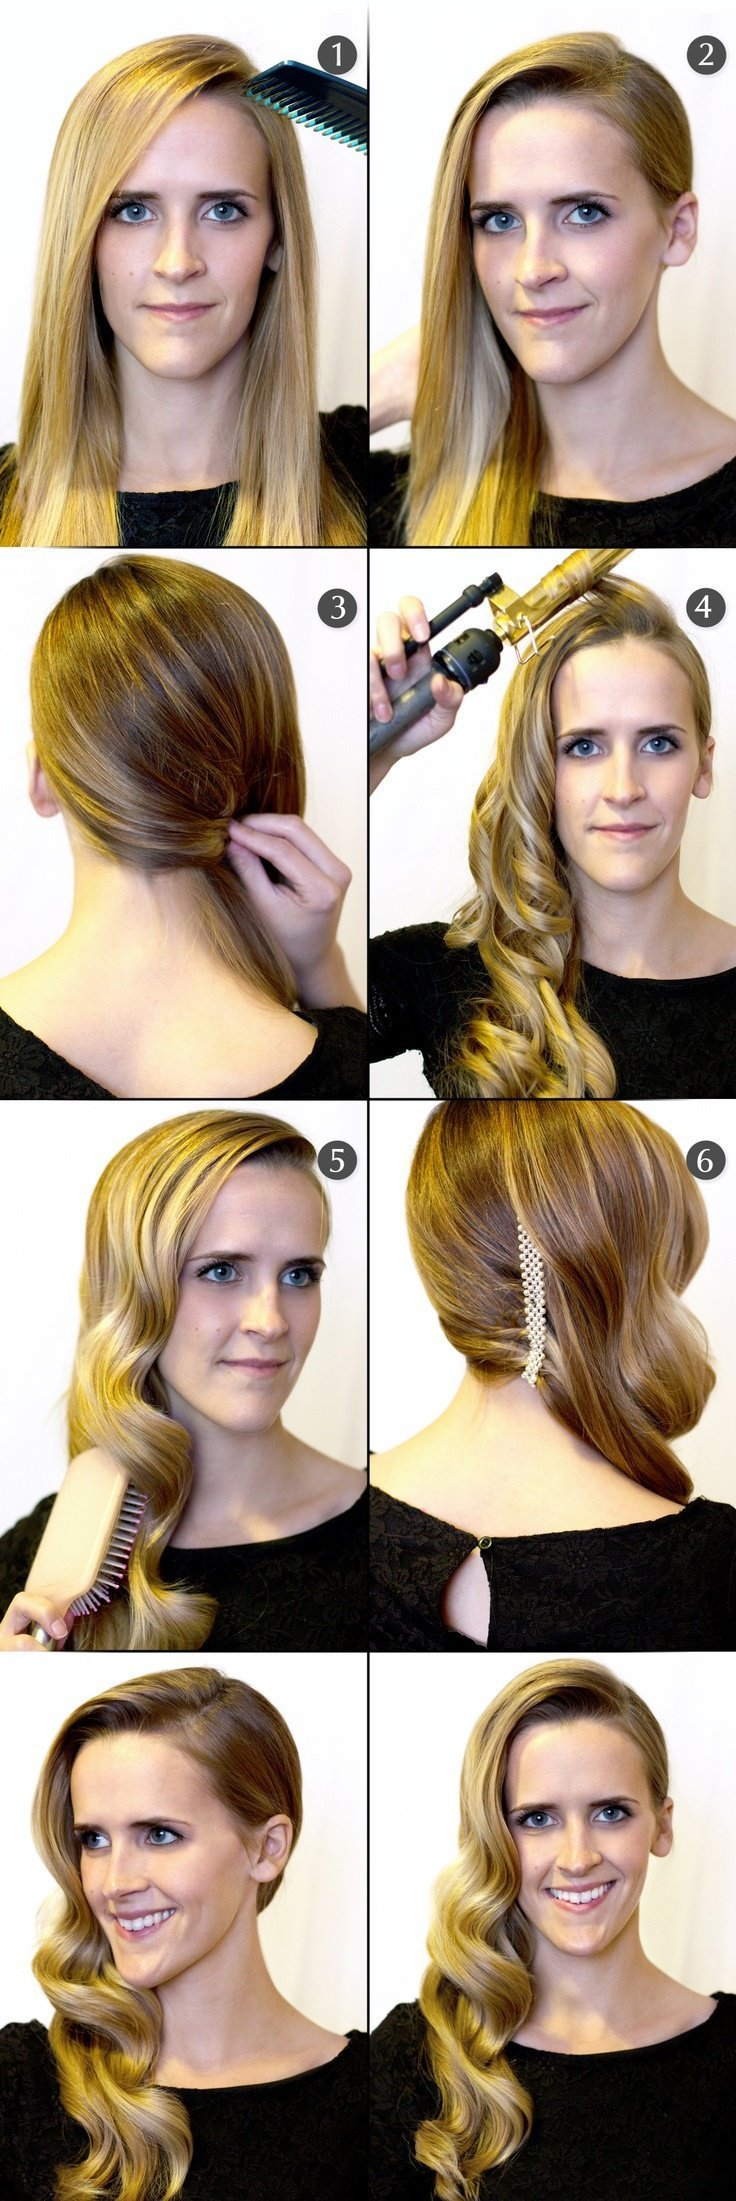 12 Simple & Easy Hairstyles For Girls Who Are Always In A Hurry